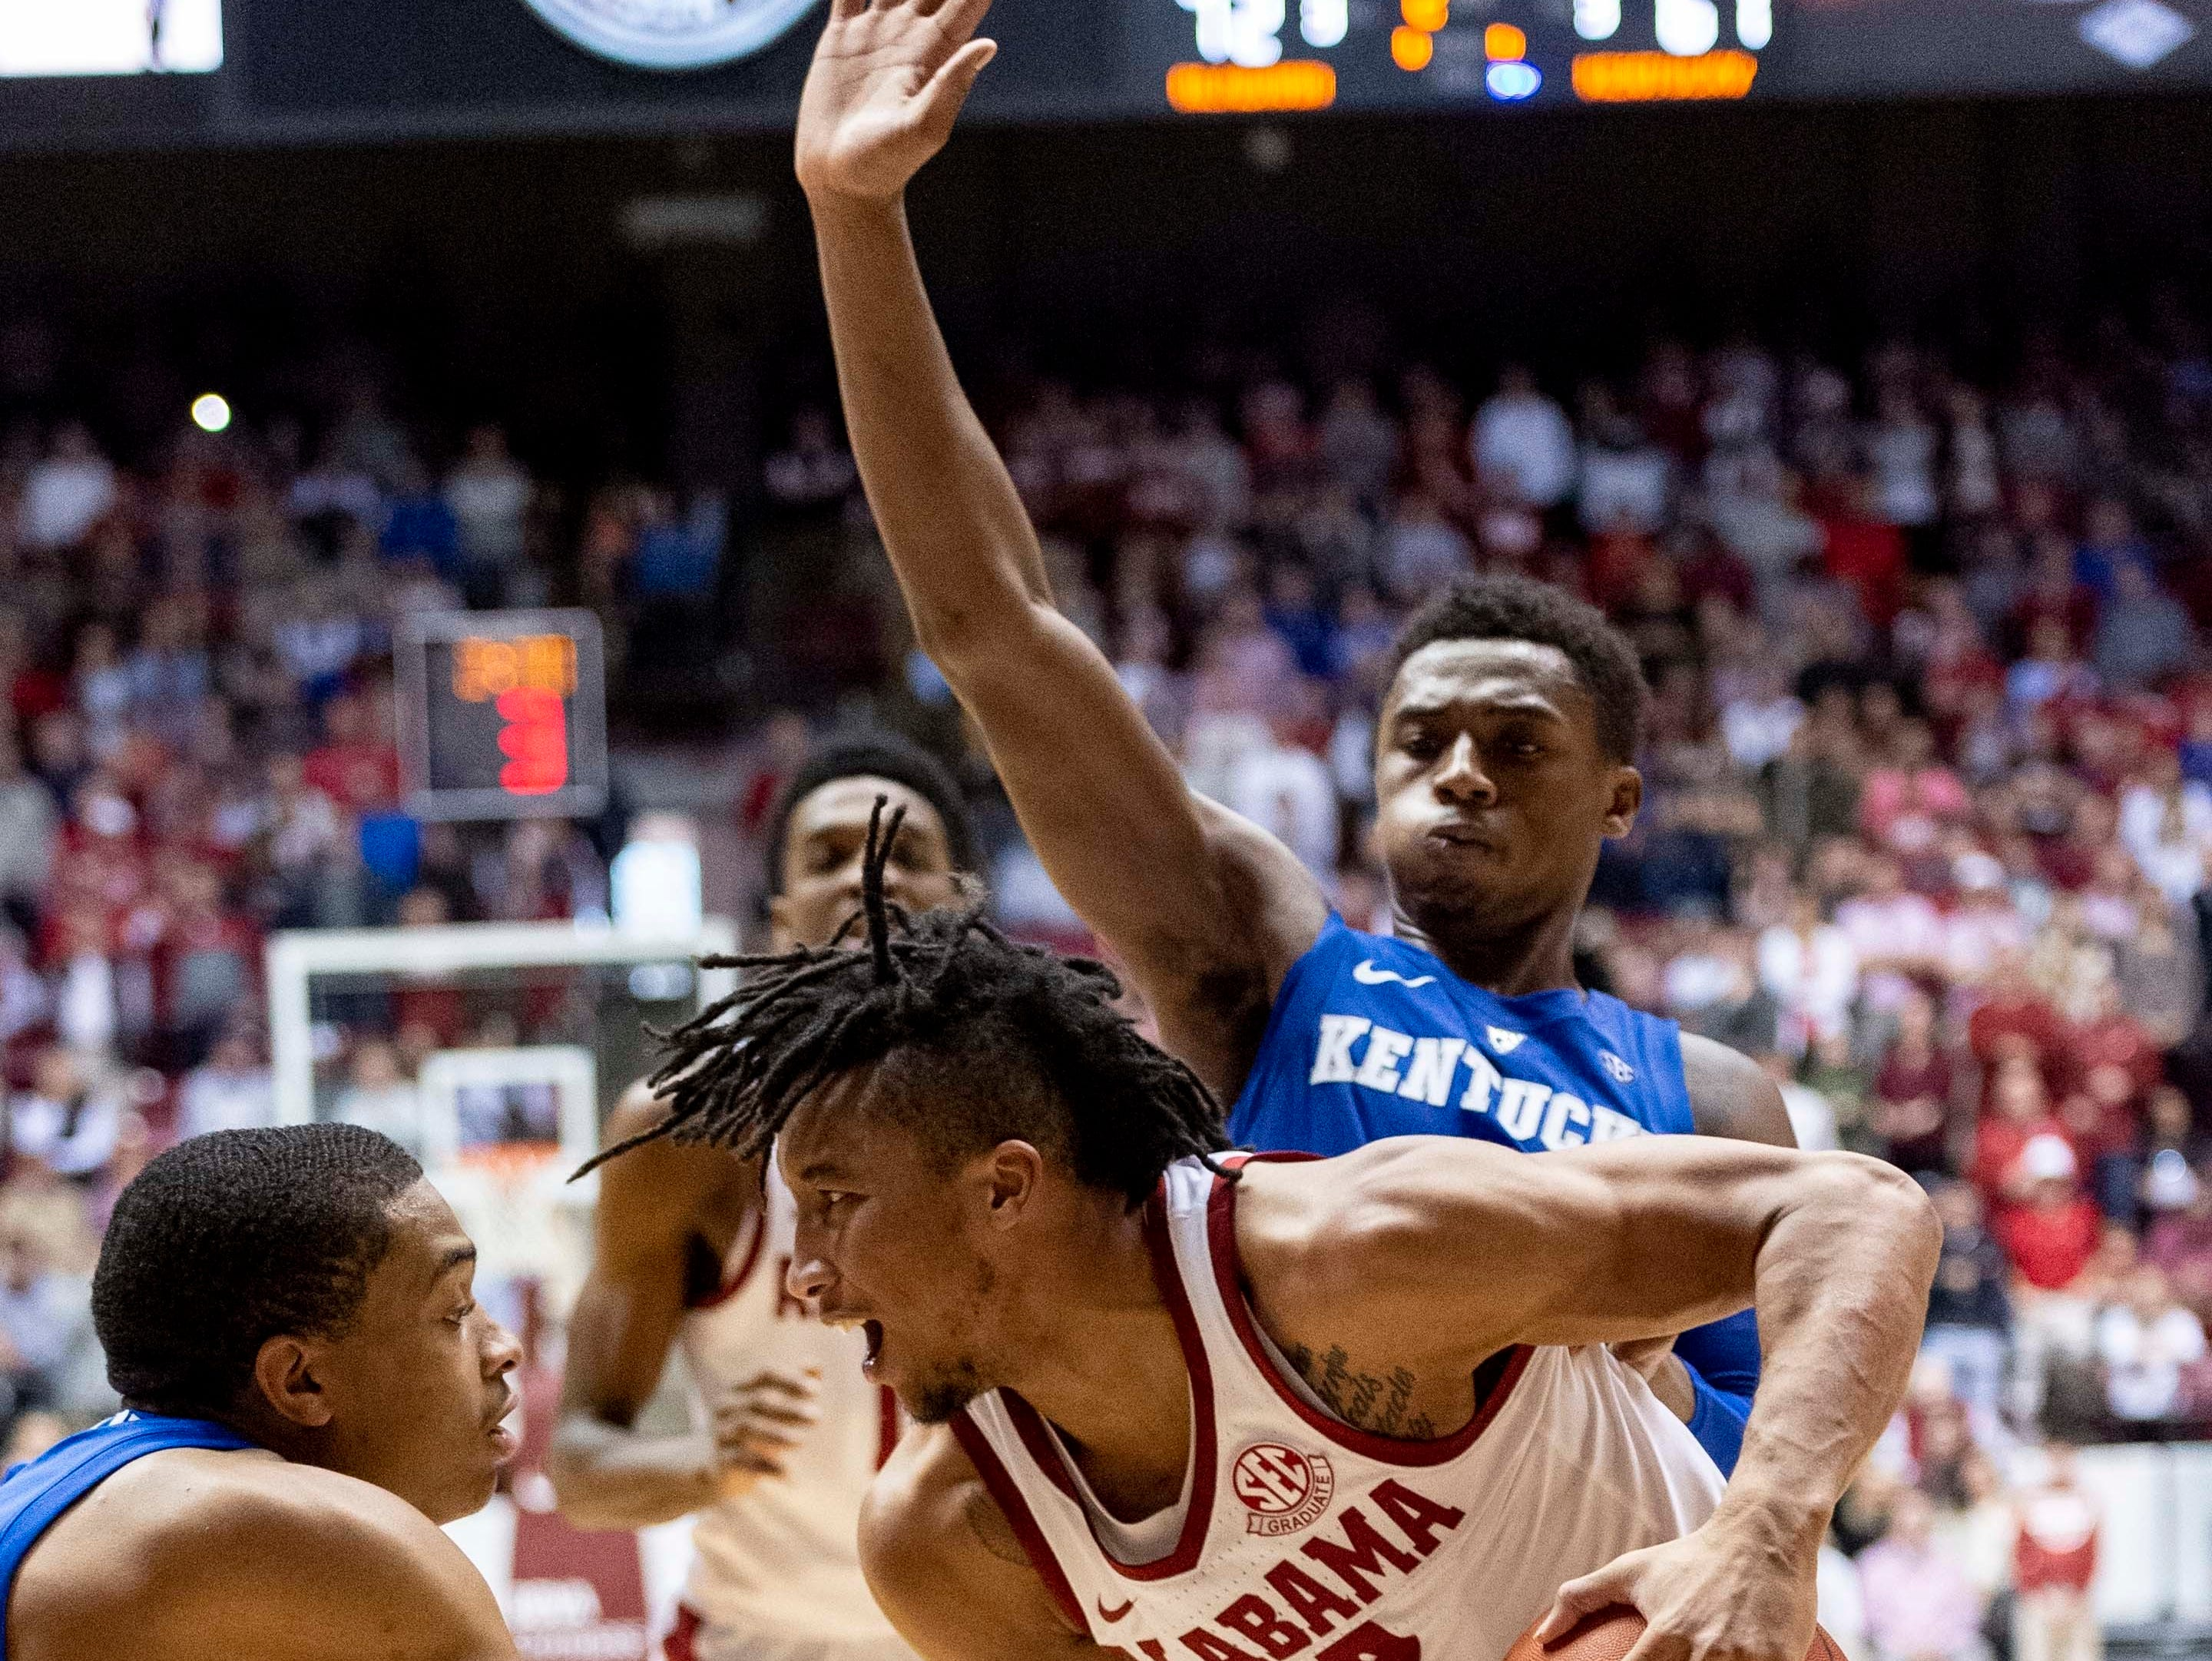 Alabama guard Dazon Ingram (12) battles tight defense from Kentucky guards Keldon Johnson (3), left, and Ashton Hagans (2) during the second half of an NCAA college basketball game, Saturday, Jan. 5, 2019, in Tuscaloosa, Ala.